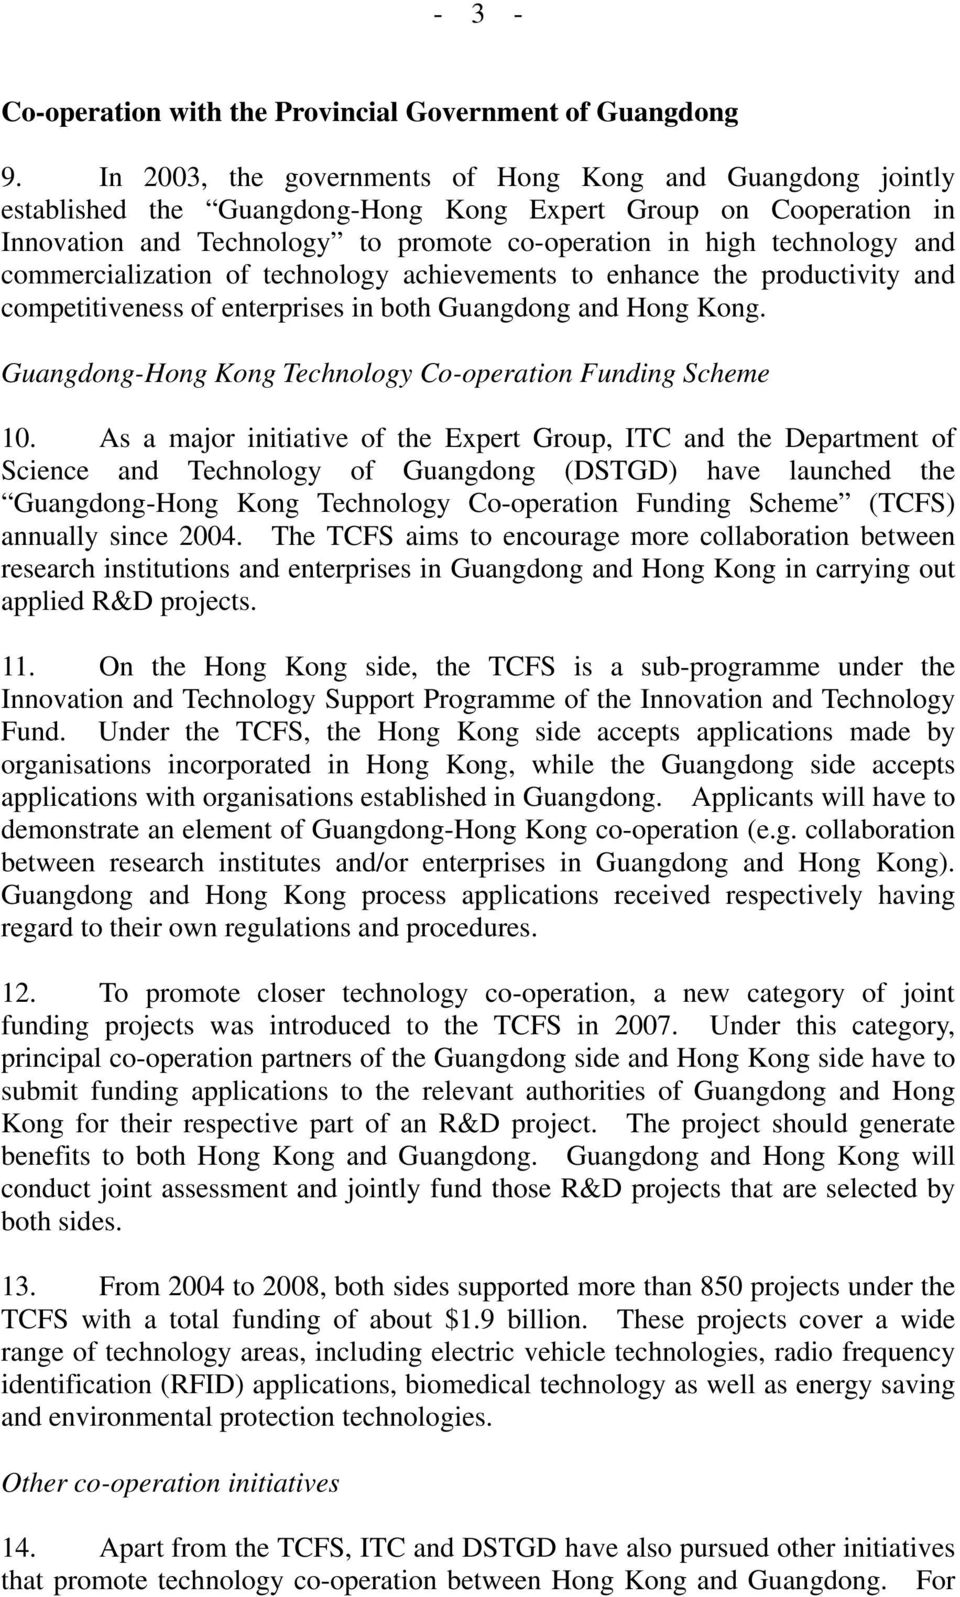 commercialization of technology achievements to enhance the productivity and competitiveness of enterprises in both Guangdong and Hong Kong.